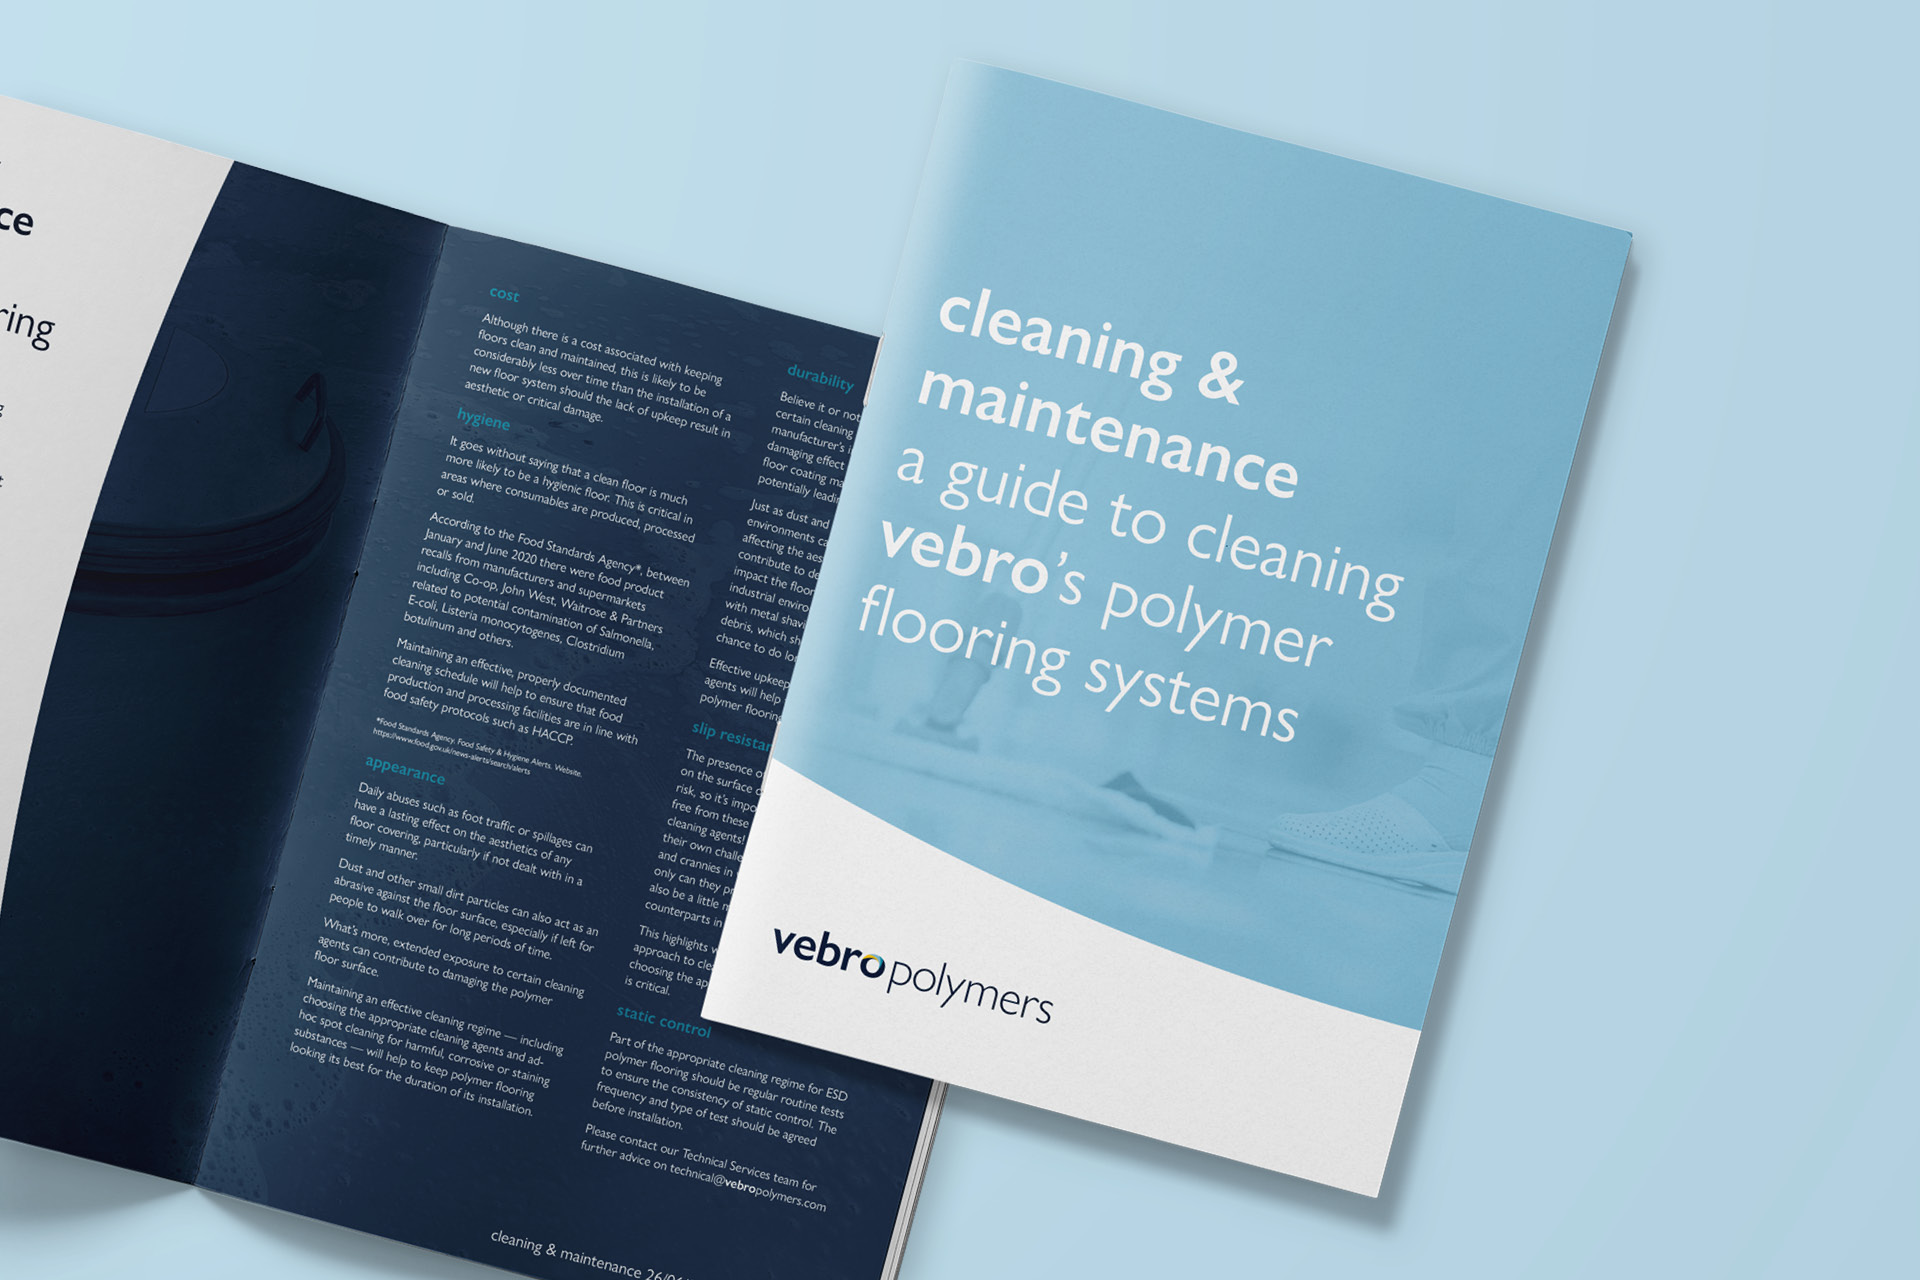 Vebro Polymers - Cleaning & Maintenance Guide